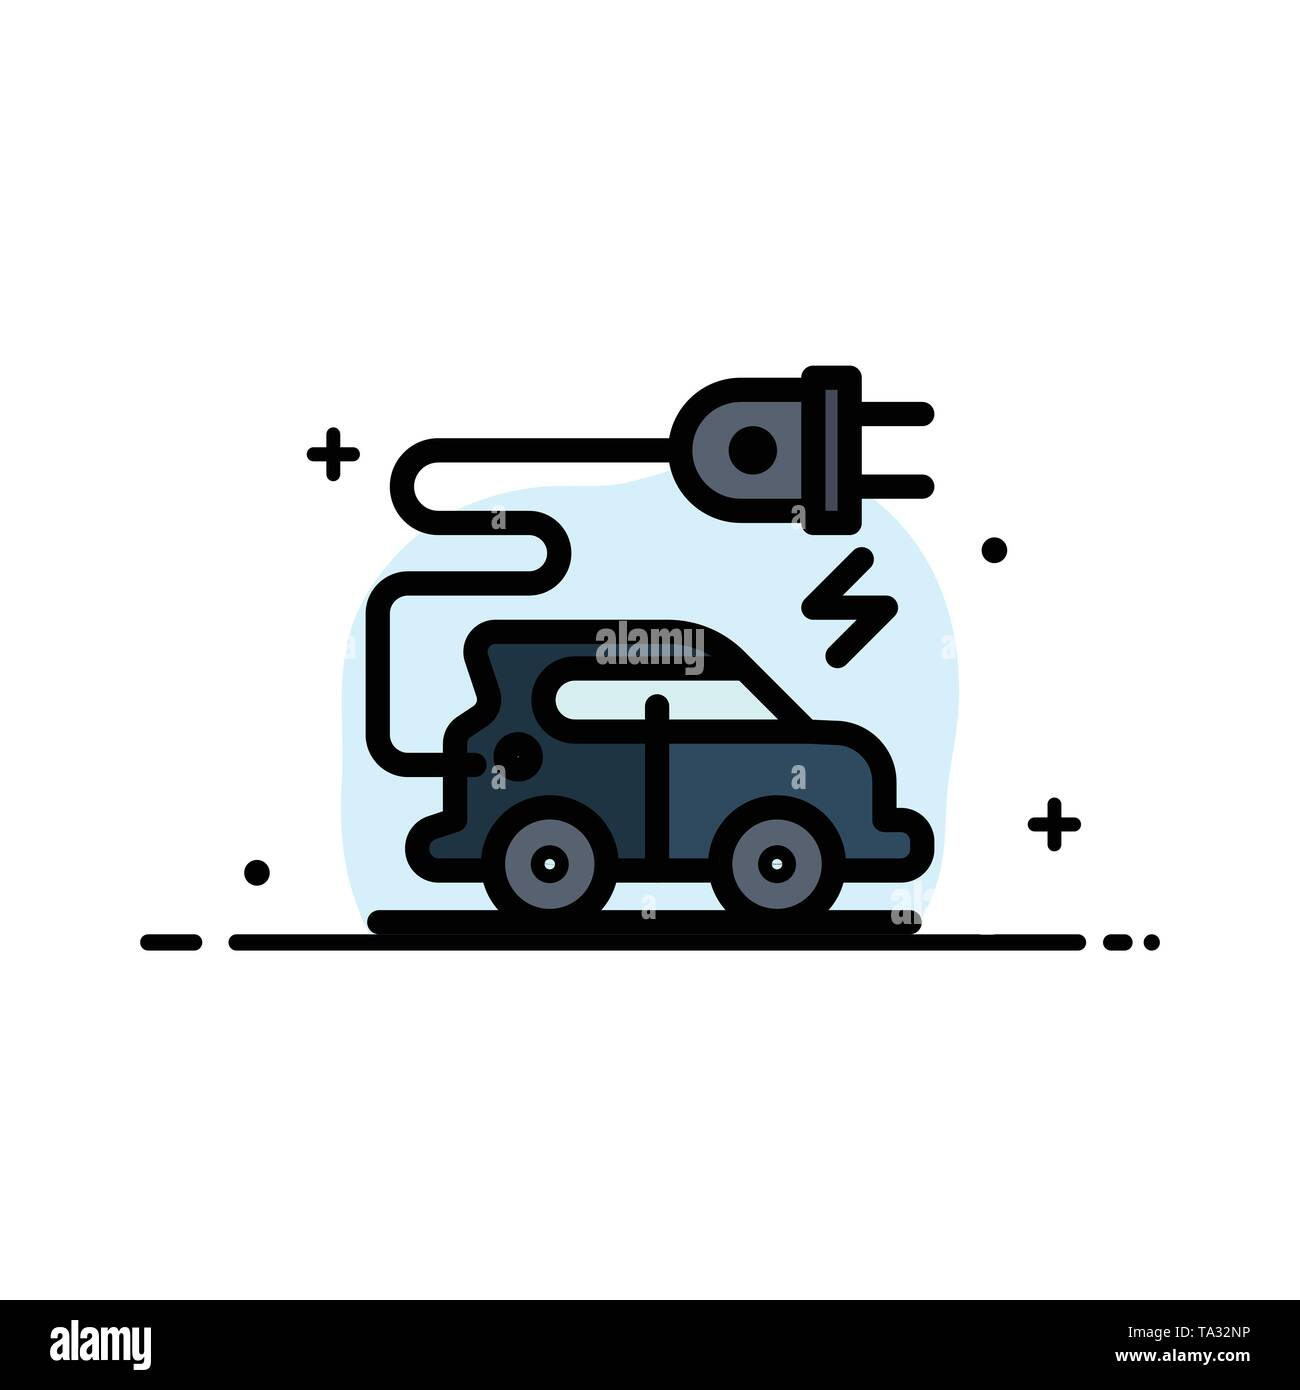 Automotive Technology, Electric Car, Electric Vehicle  Business Flat Line Filled Icon Vector Banner Template - Stock Image